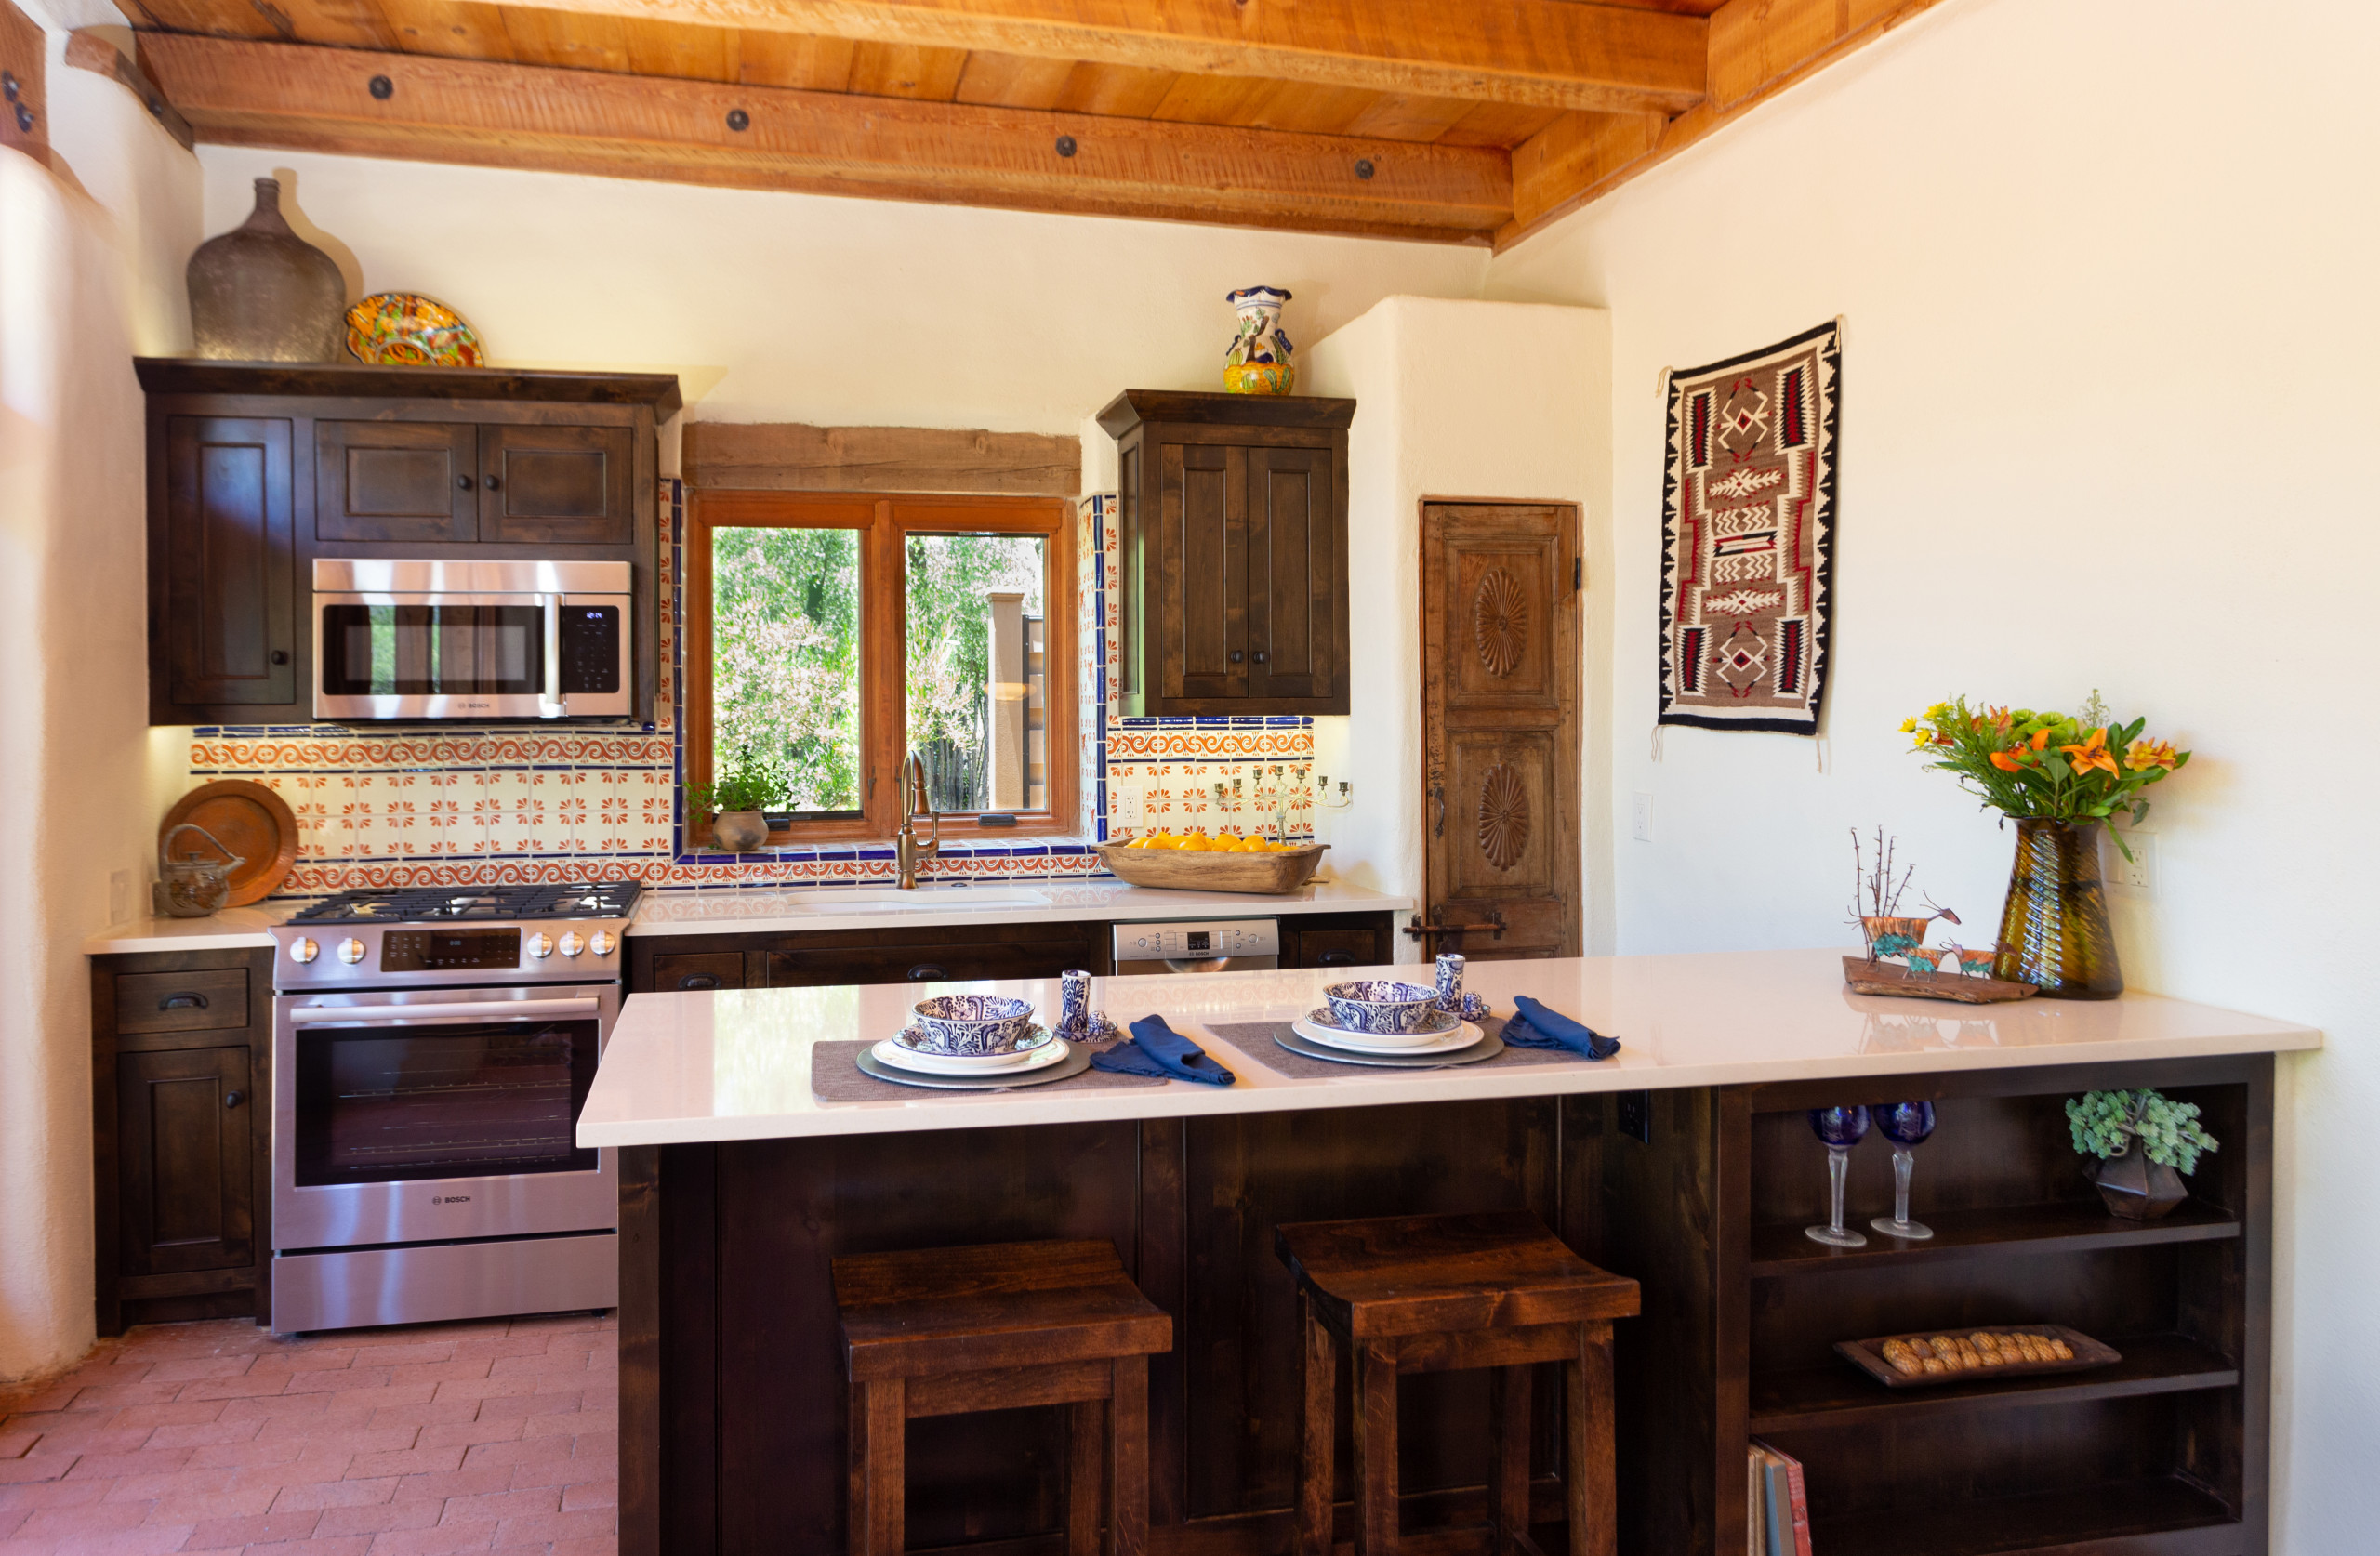 75 Beautiful Small Kitchen Pictures Ideas February 2021 Houzz